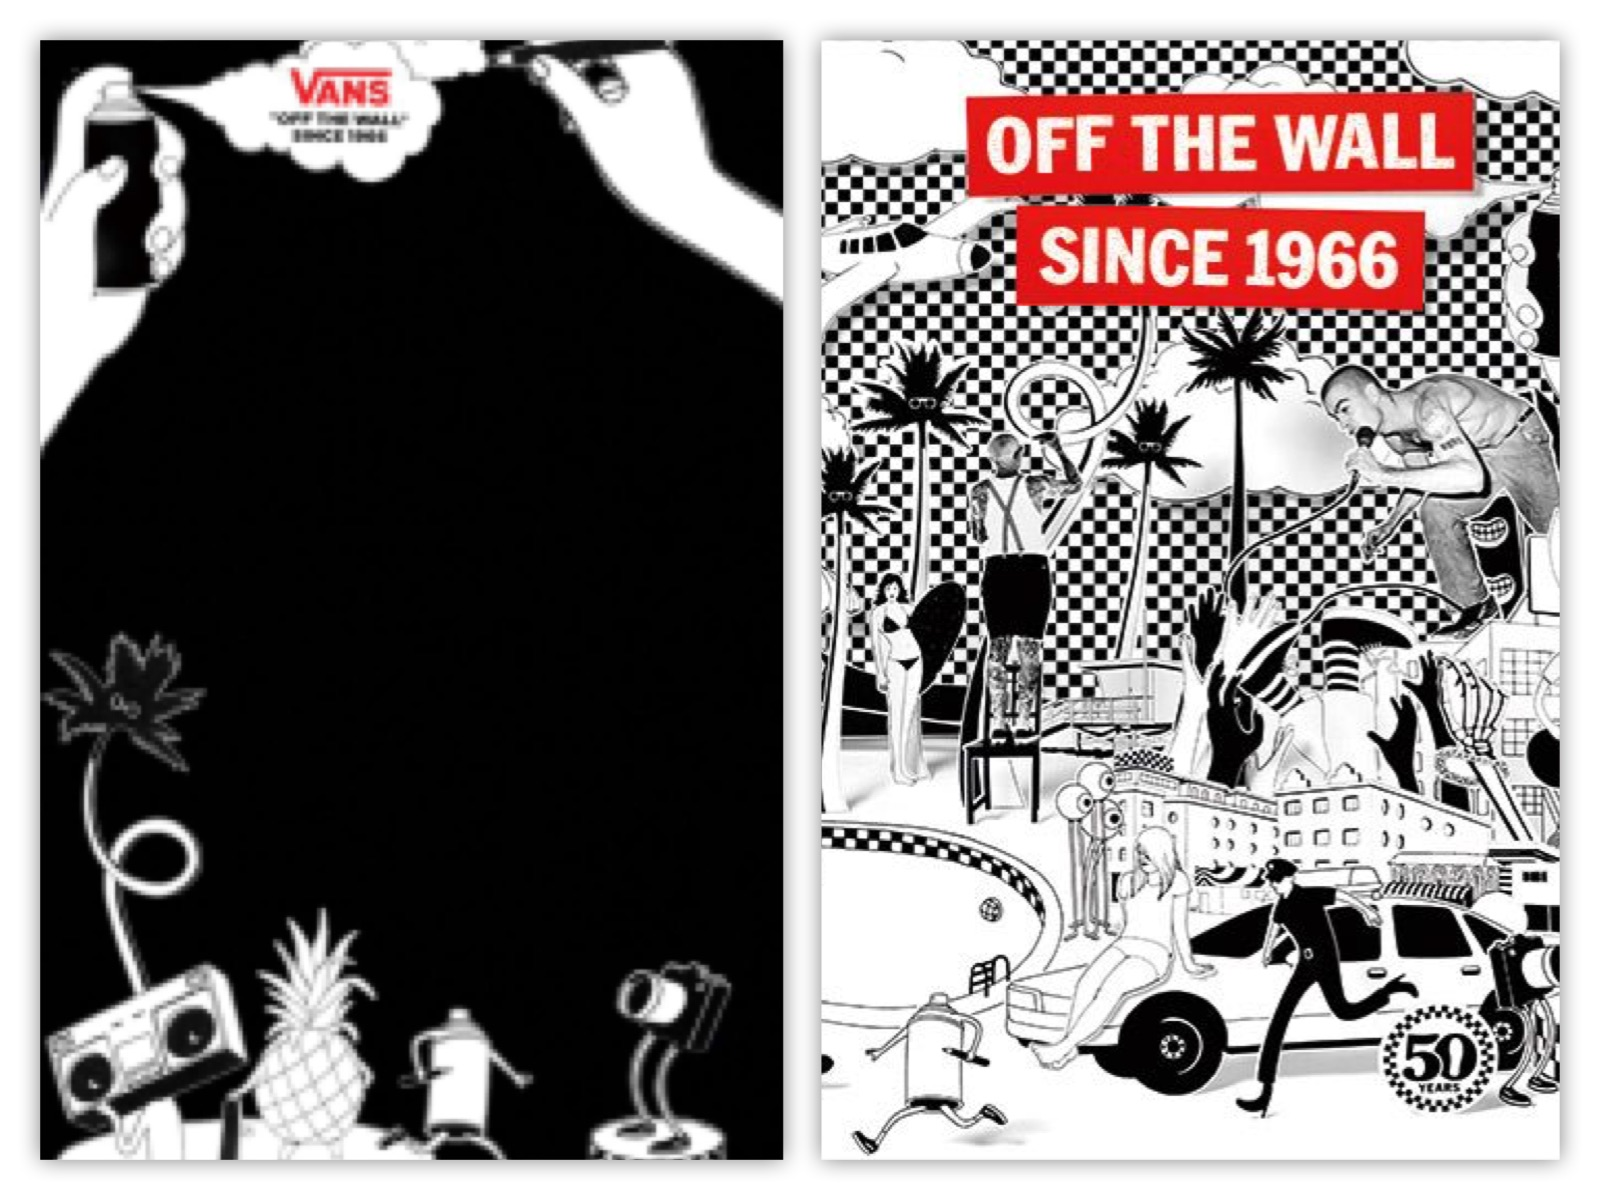 BRILLIANT marketing from Vans  Off The Wall for 50 Years!!  1e68b0c1bf